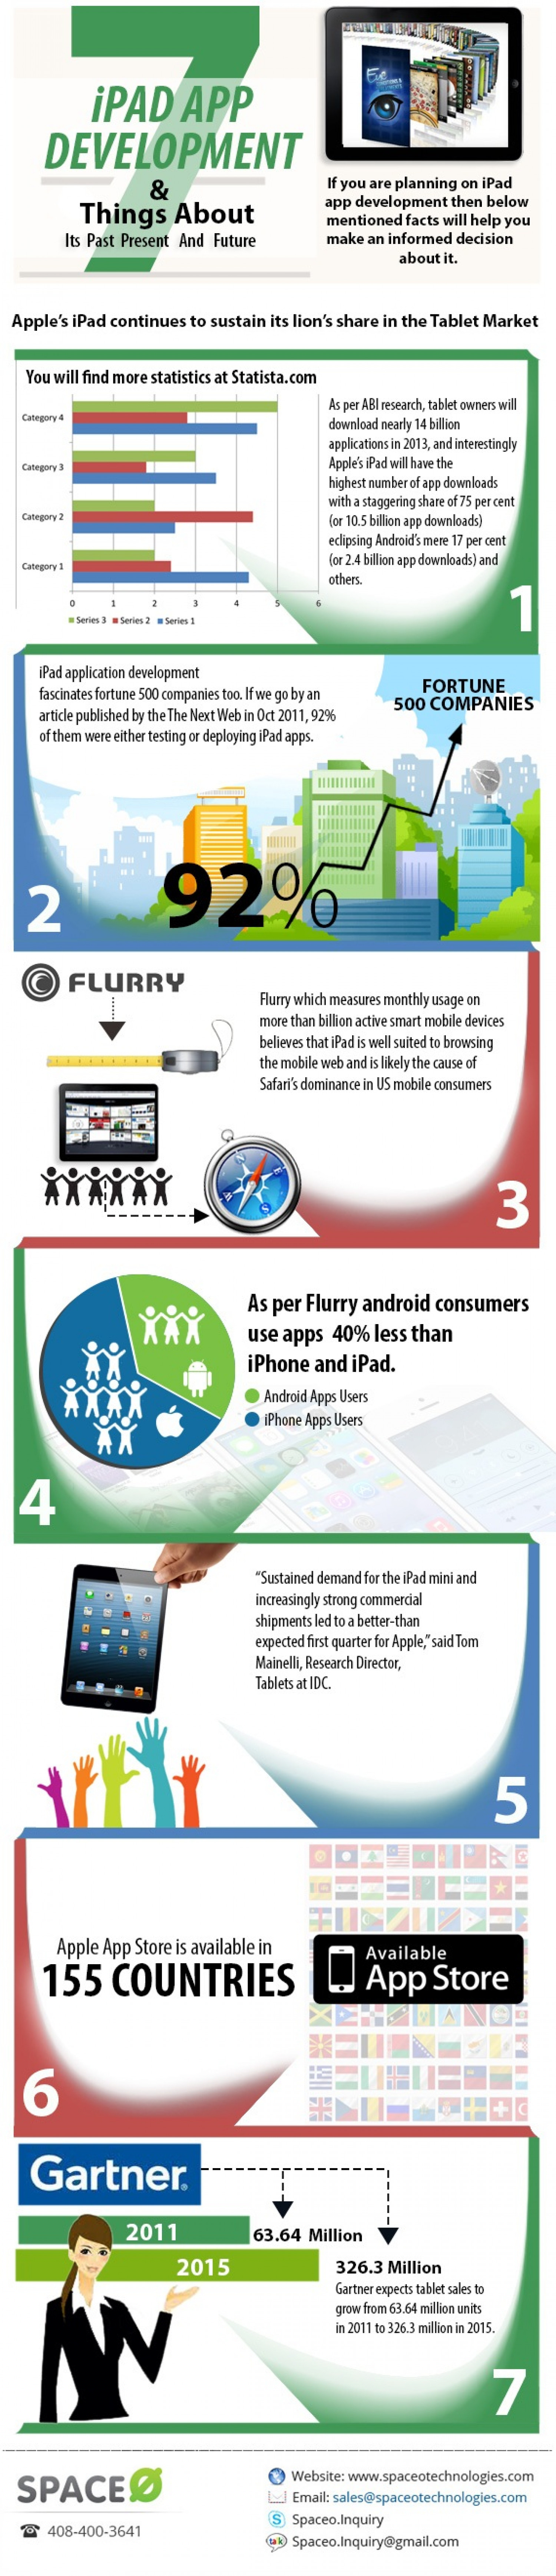 iPad App Development and 7 Things To Know About It Infographic